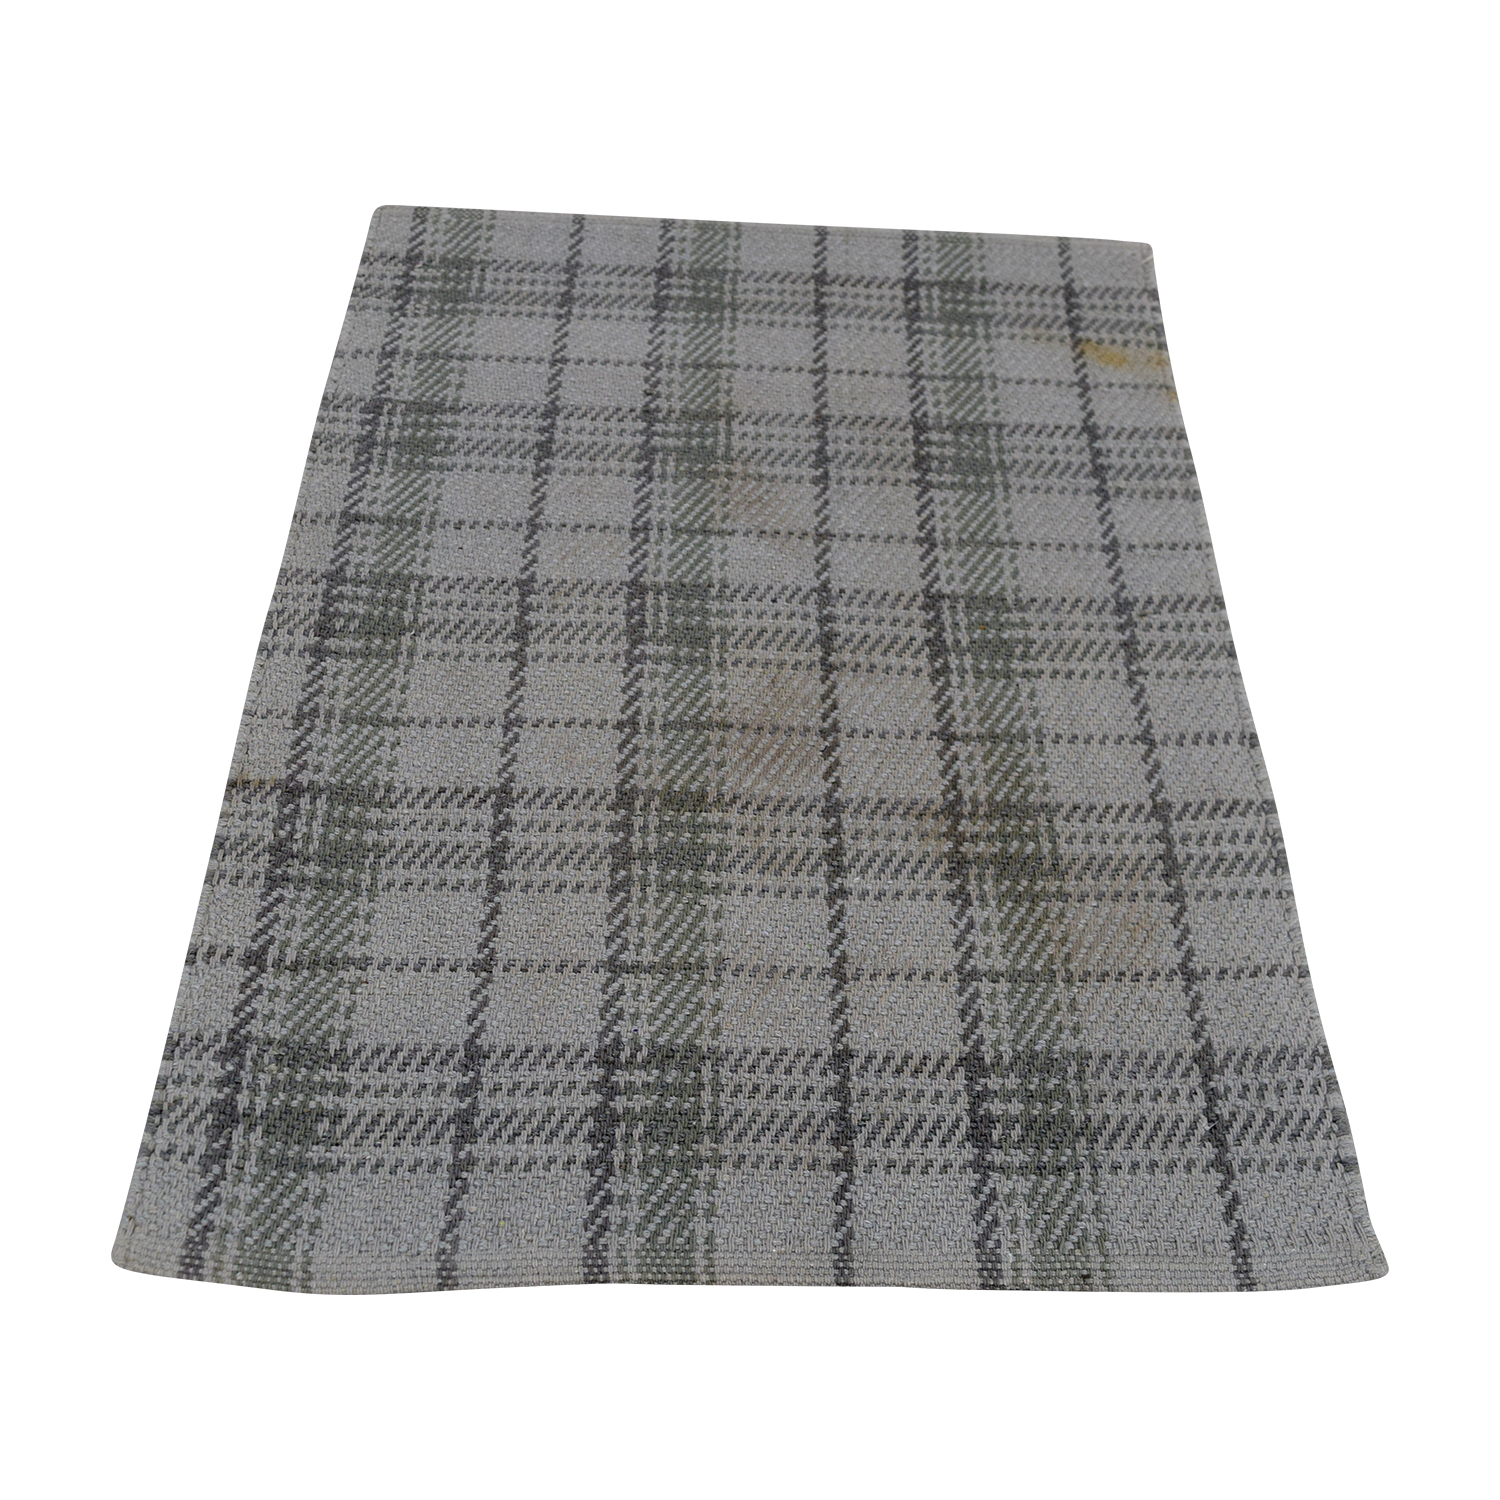 Obeetee Obeetee Grey Plaid Rug nj